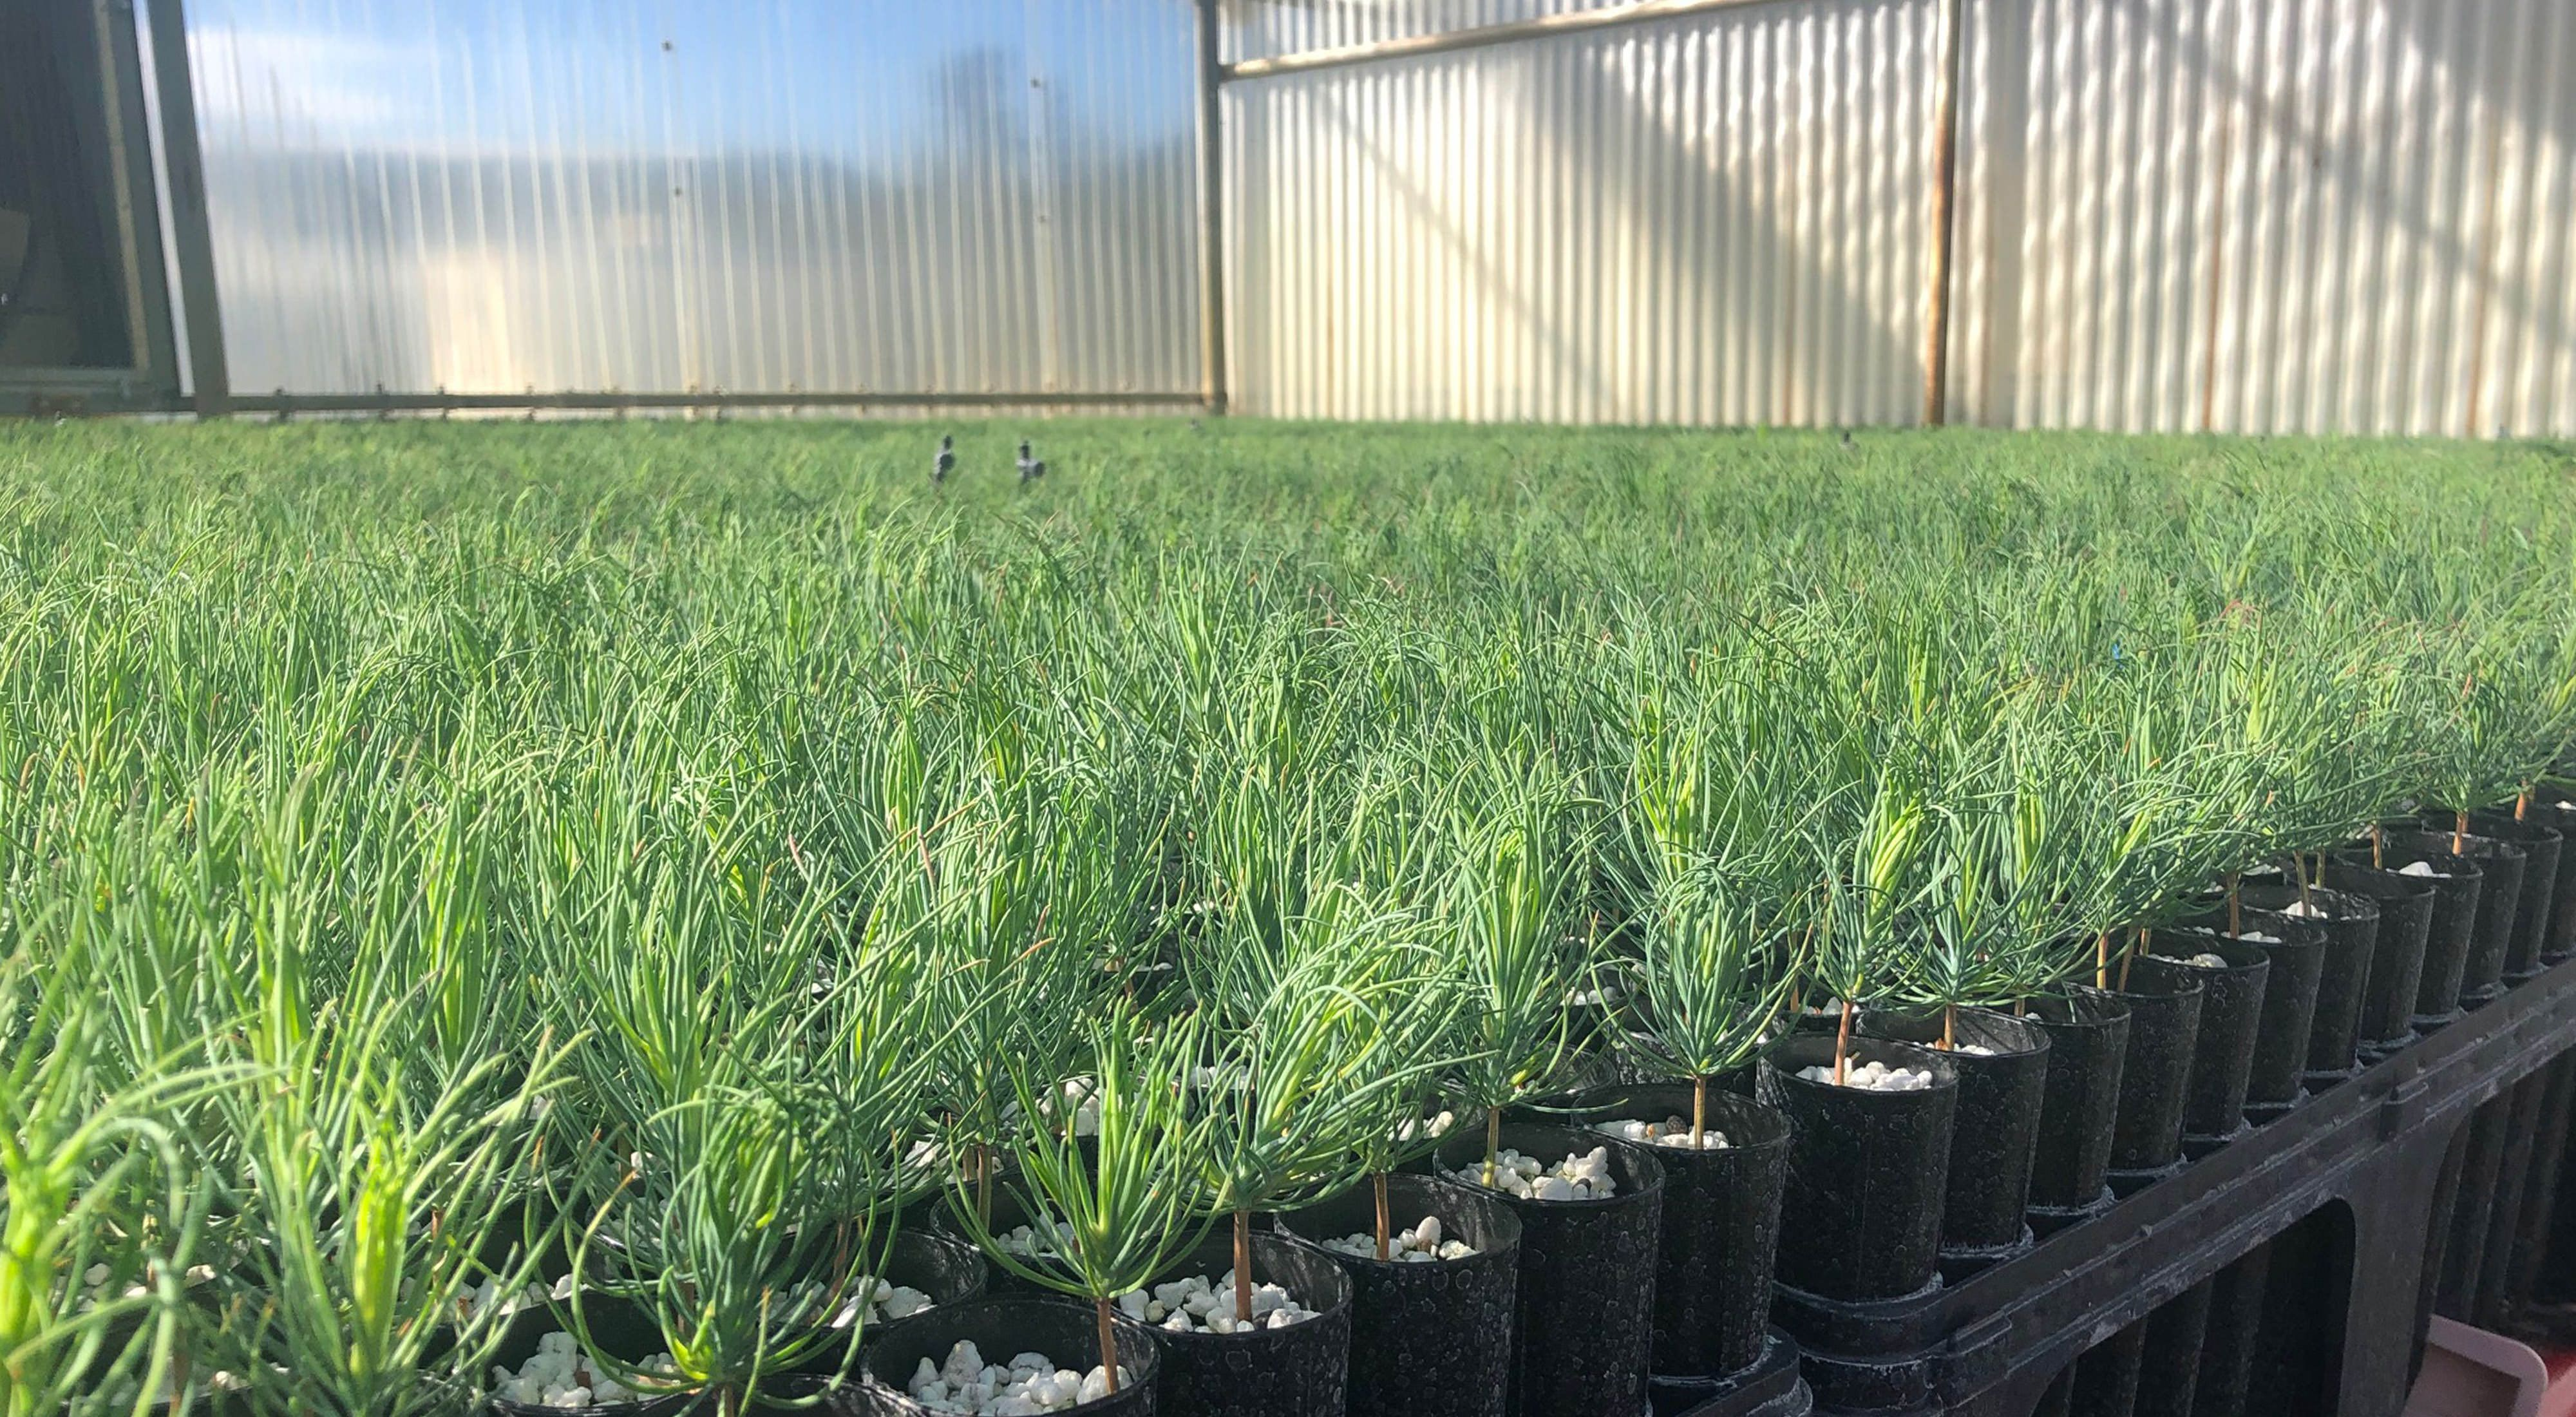 Seedlings slated for reforestation use are ready for planting.